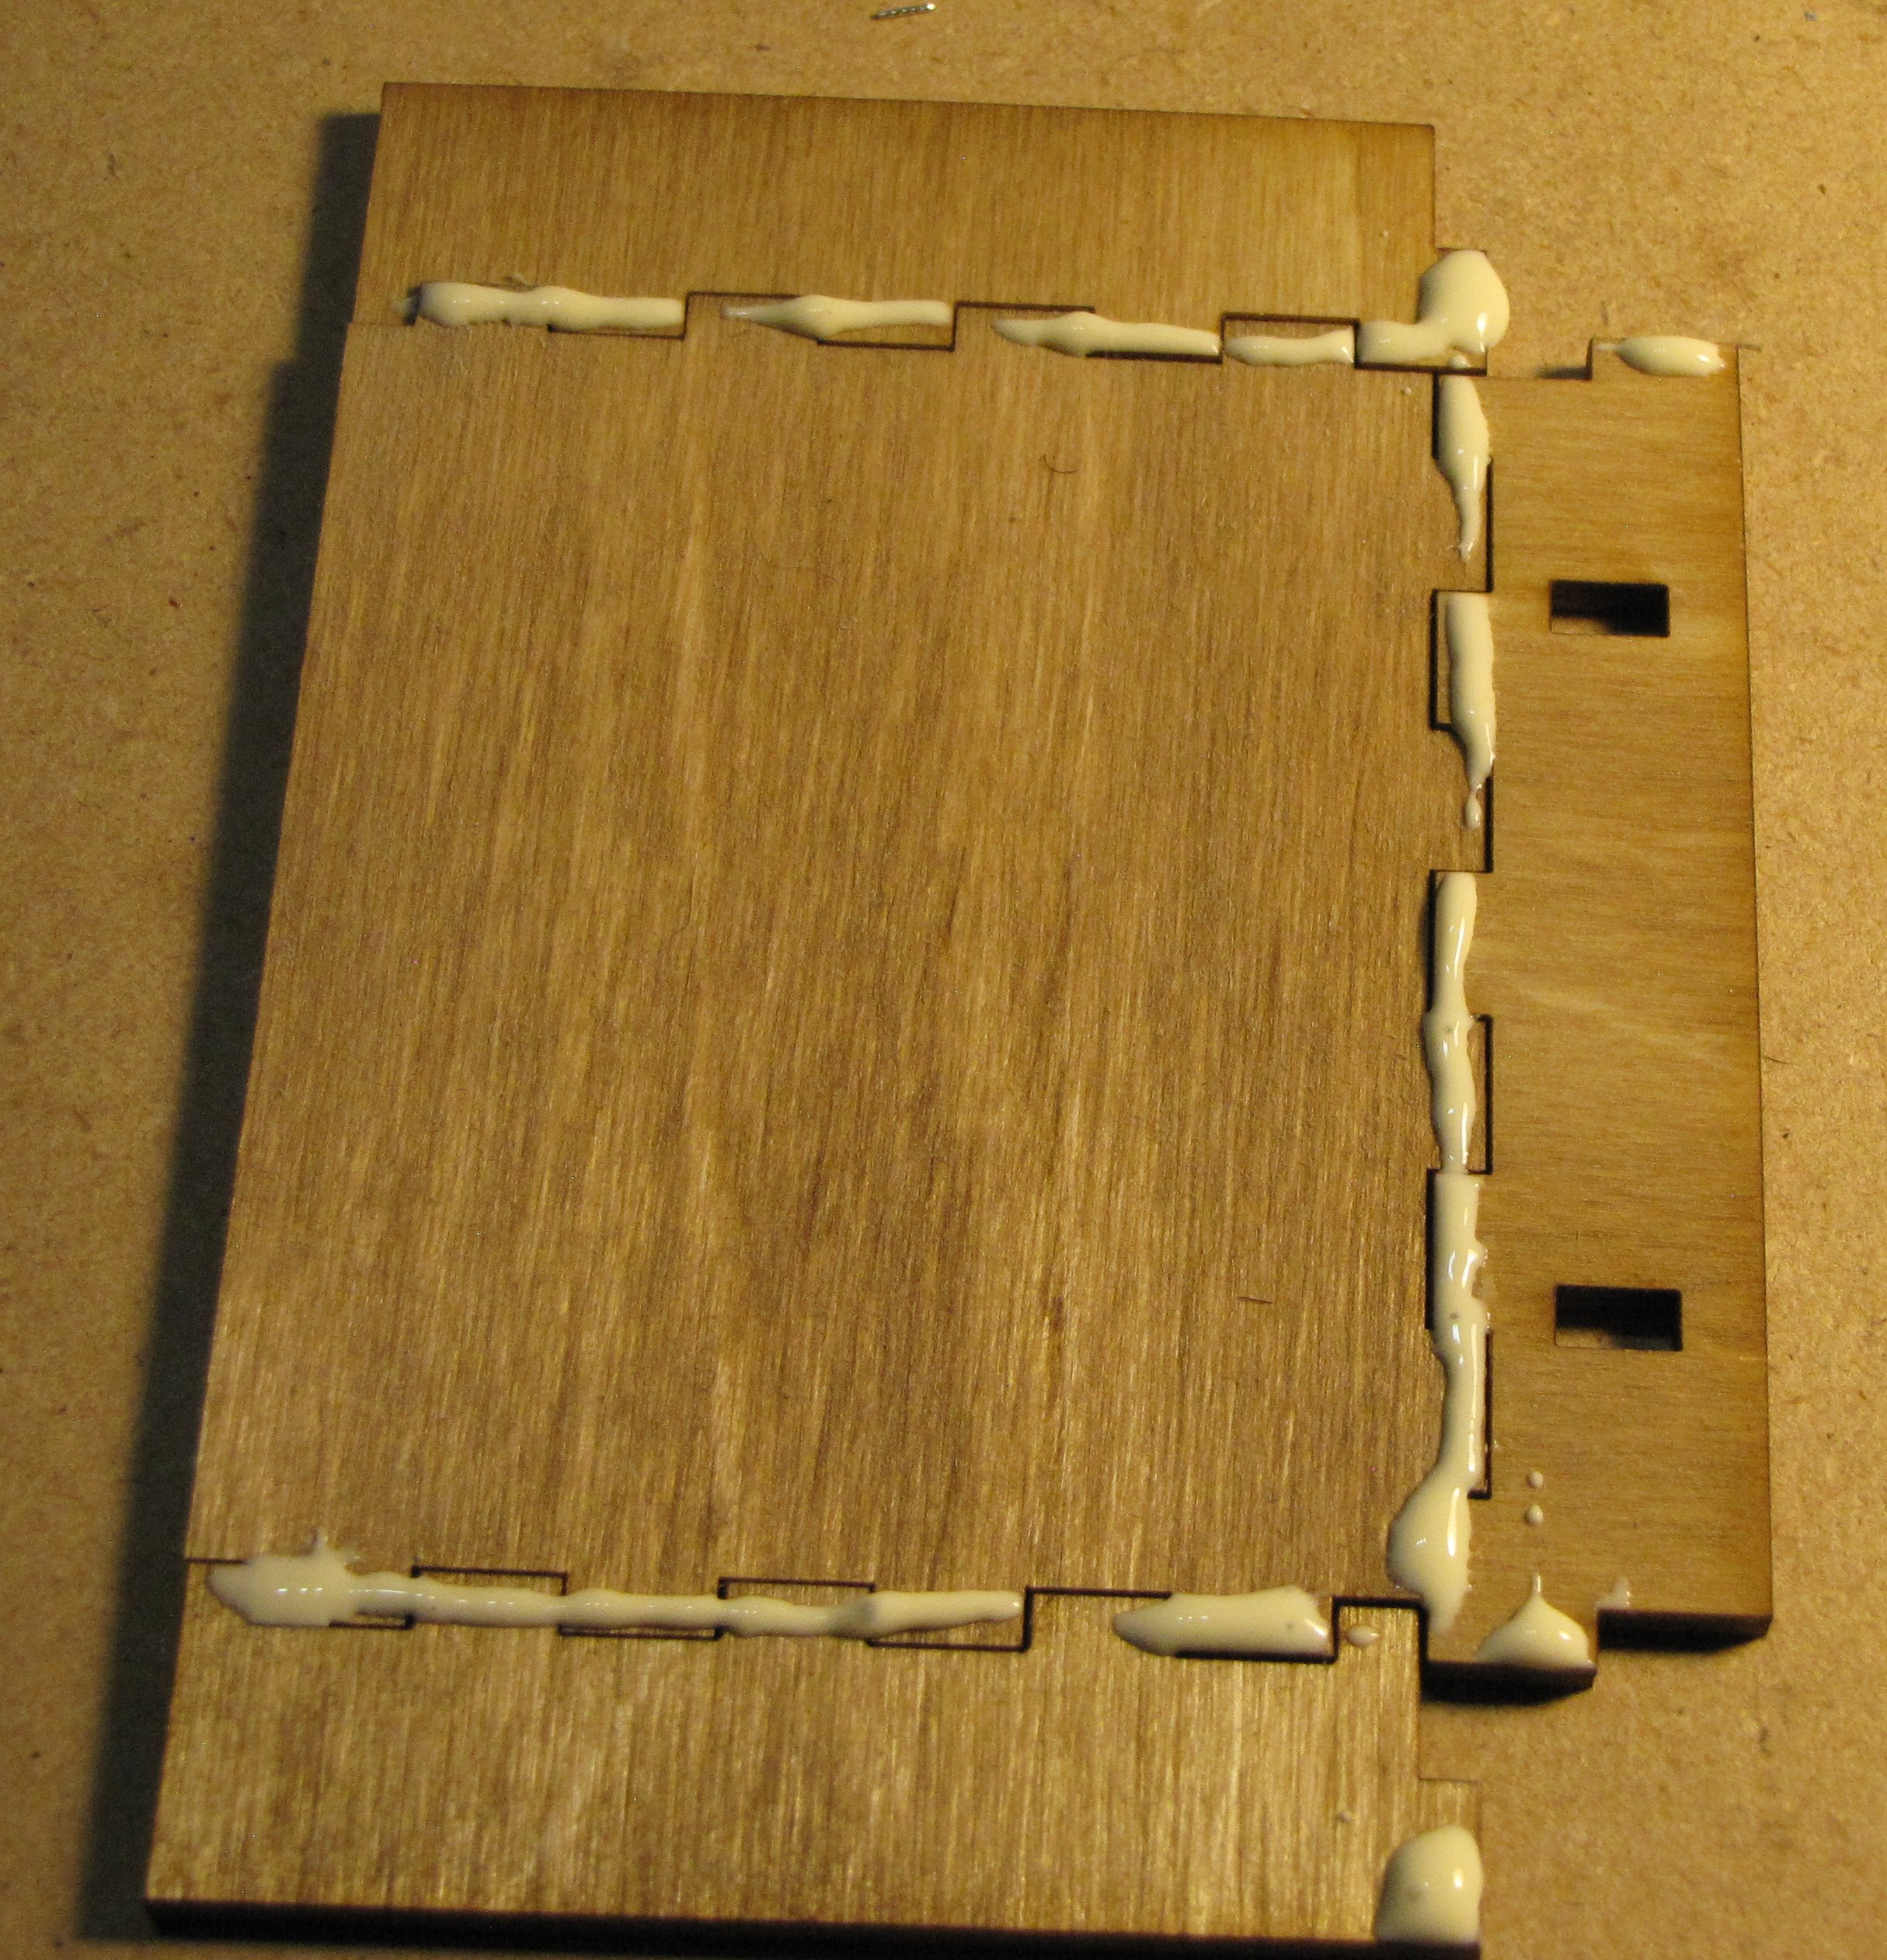 Picture of Glue Up the Lid